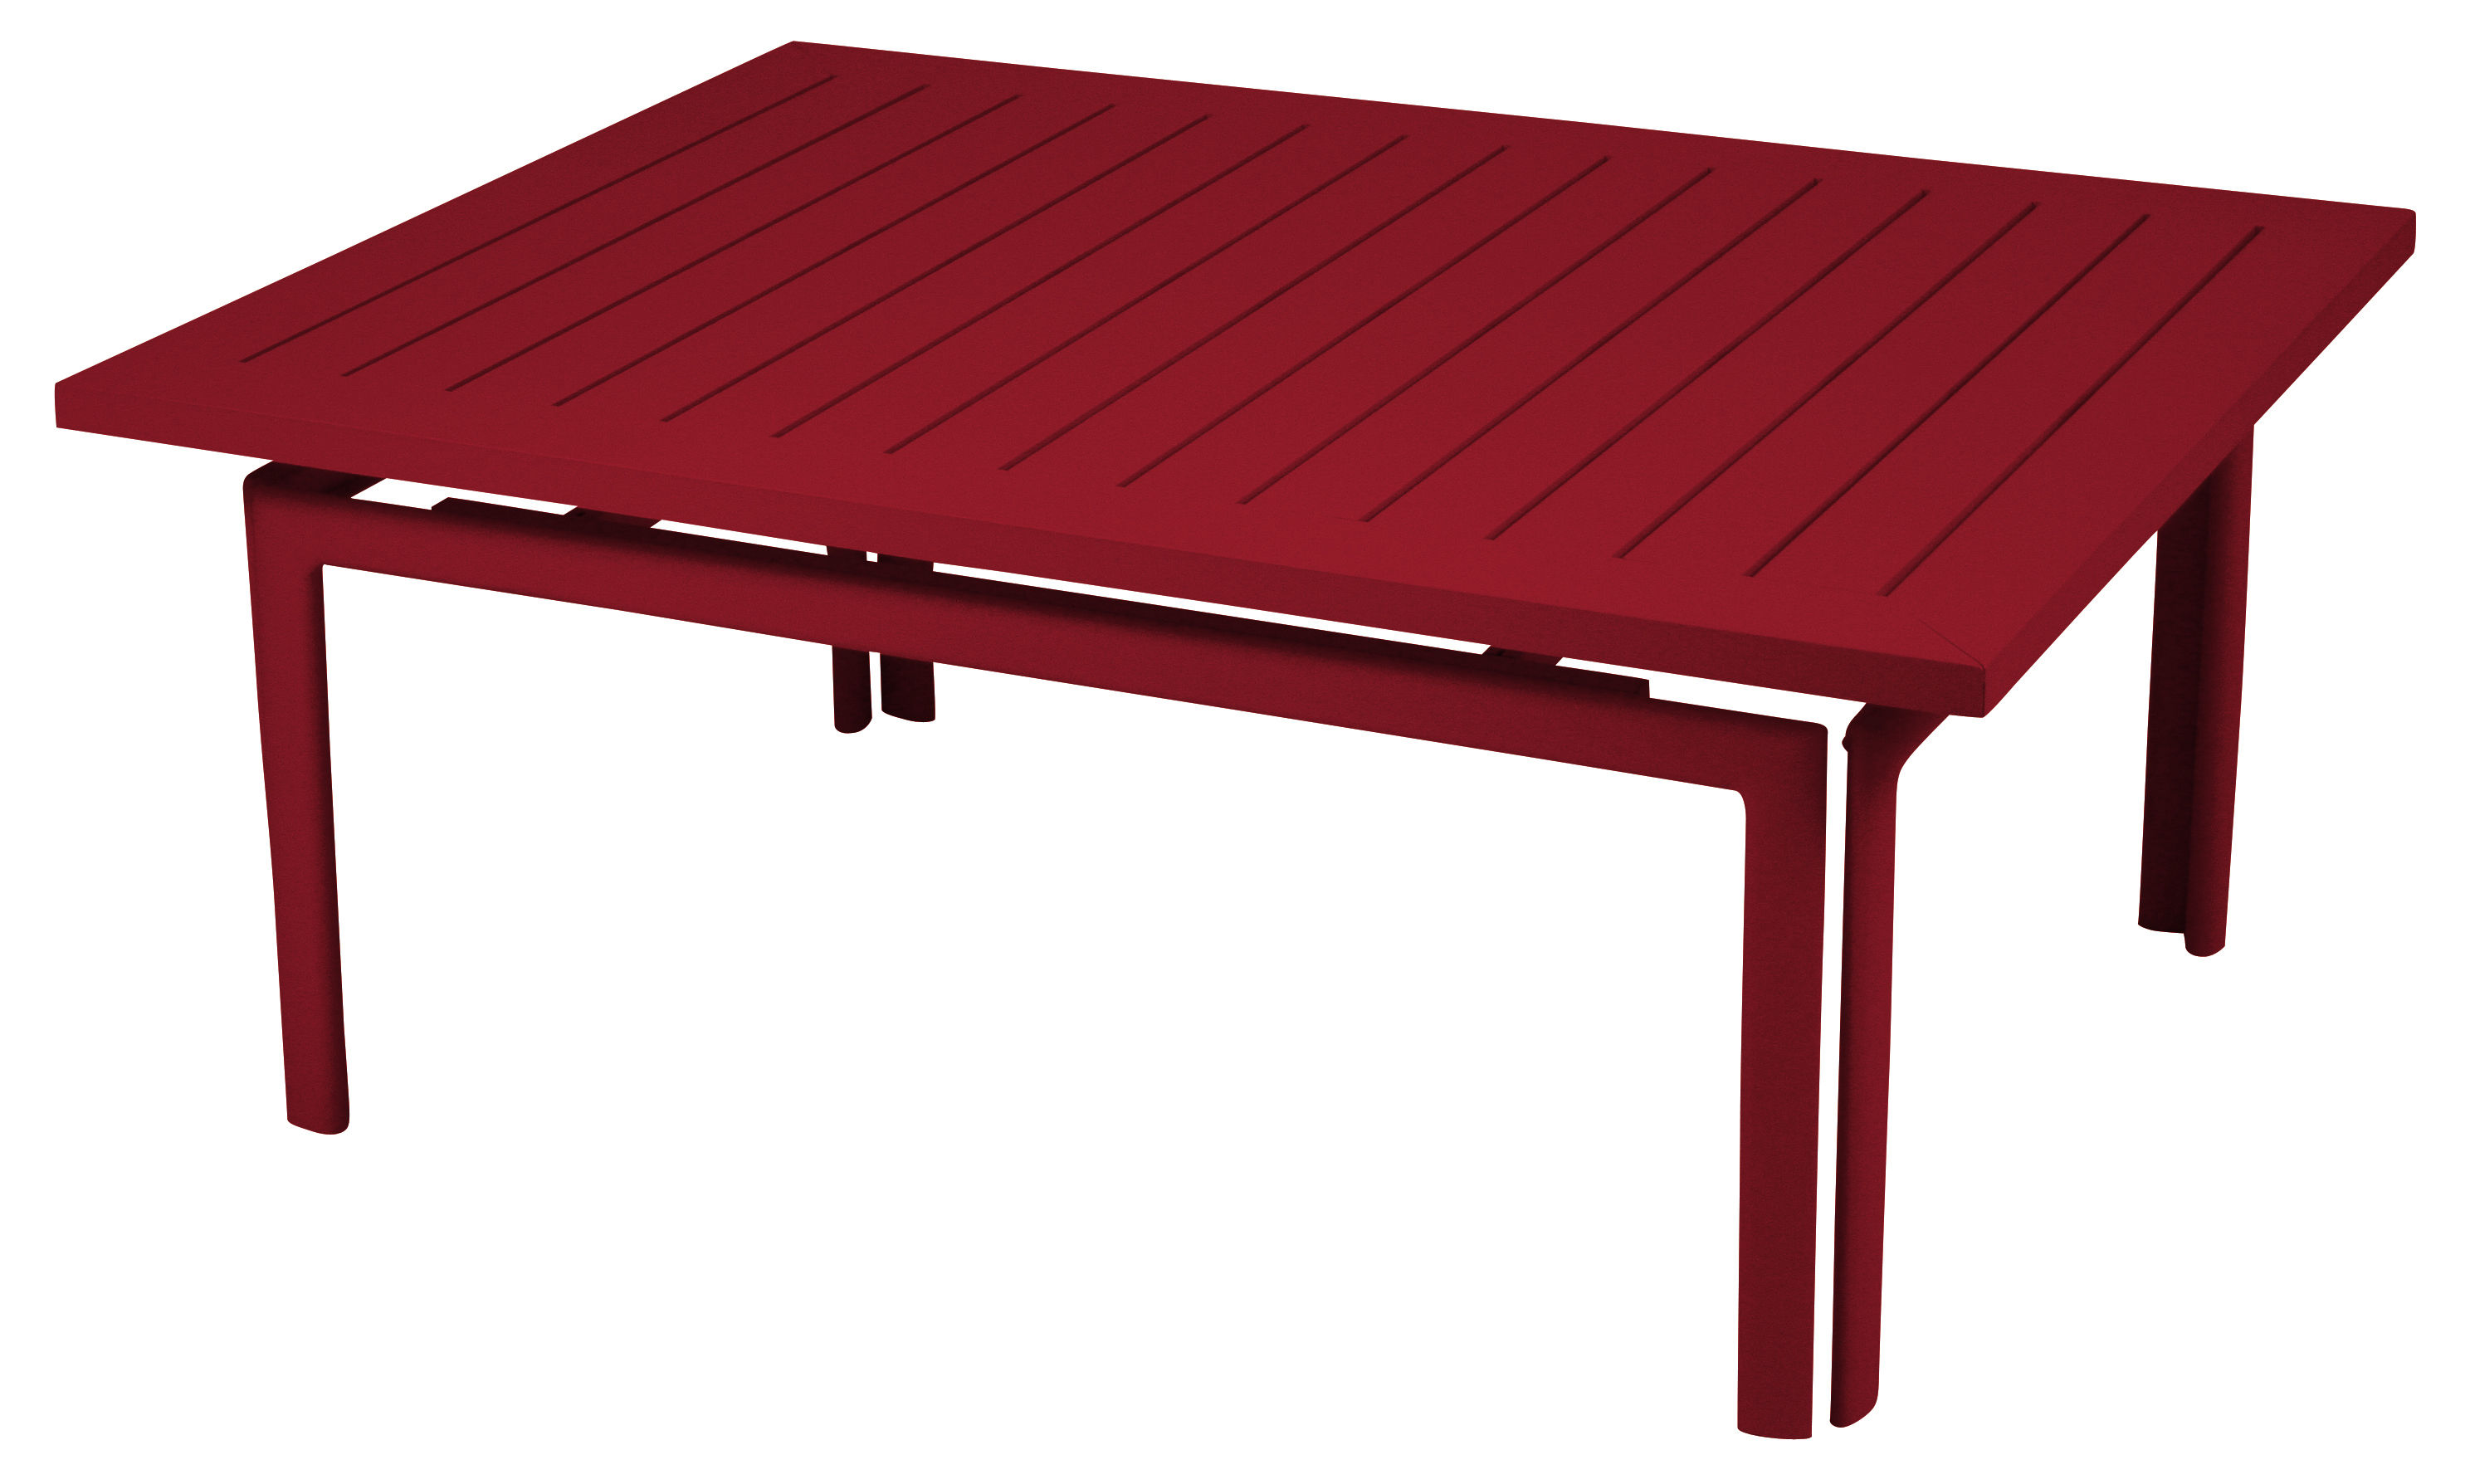 Table basse costa aluminium 100 x 80 cm piment fermob for Table basse design 80 cm